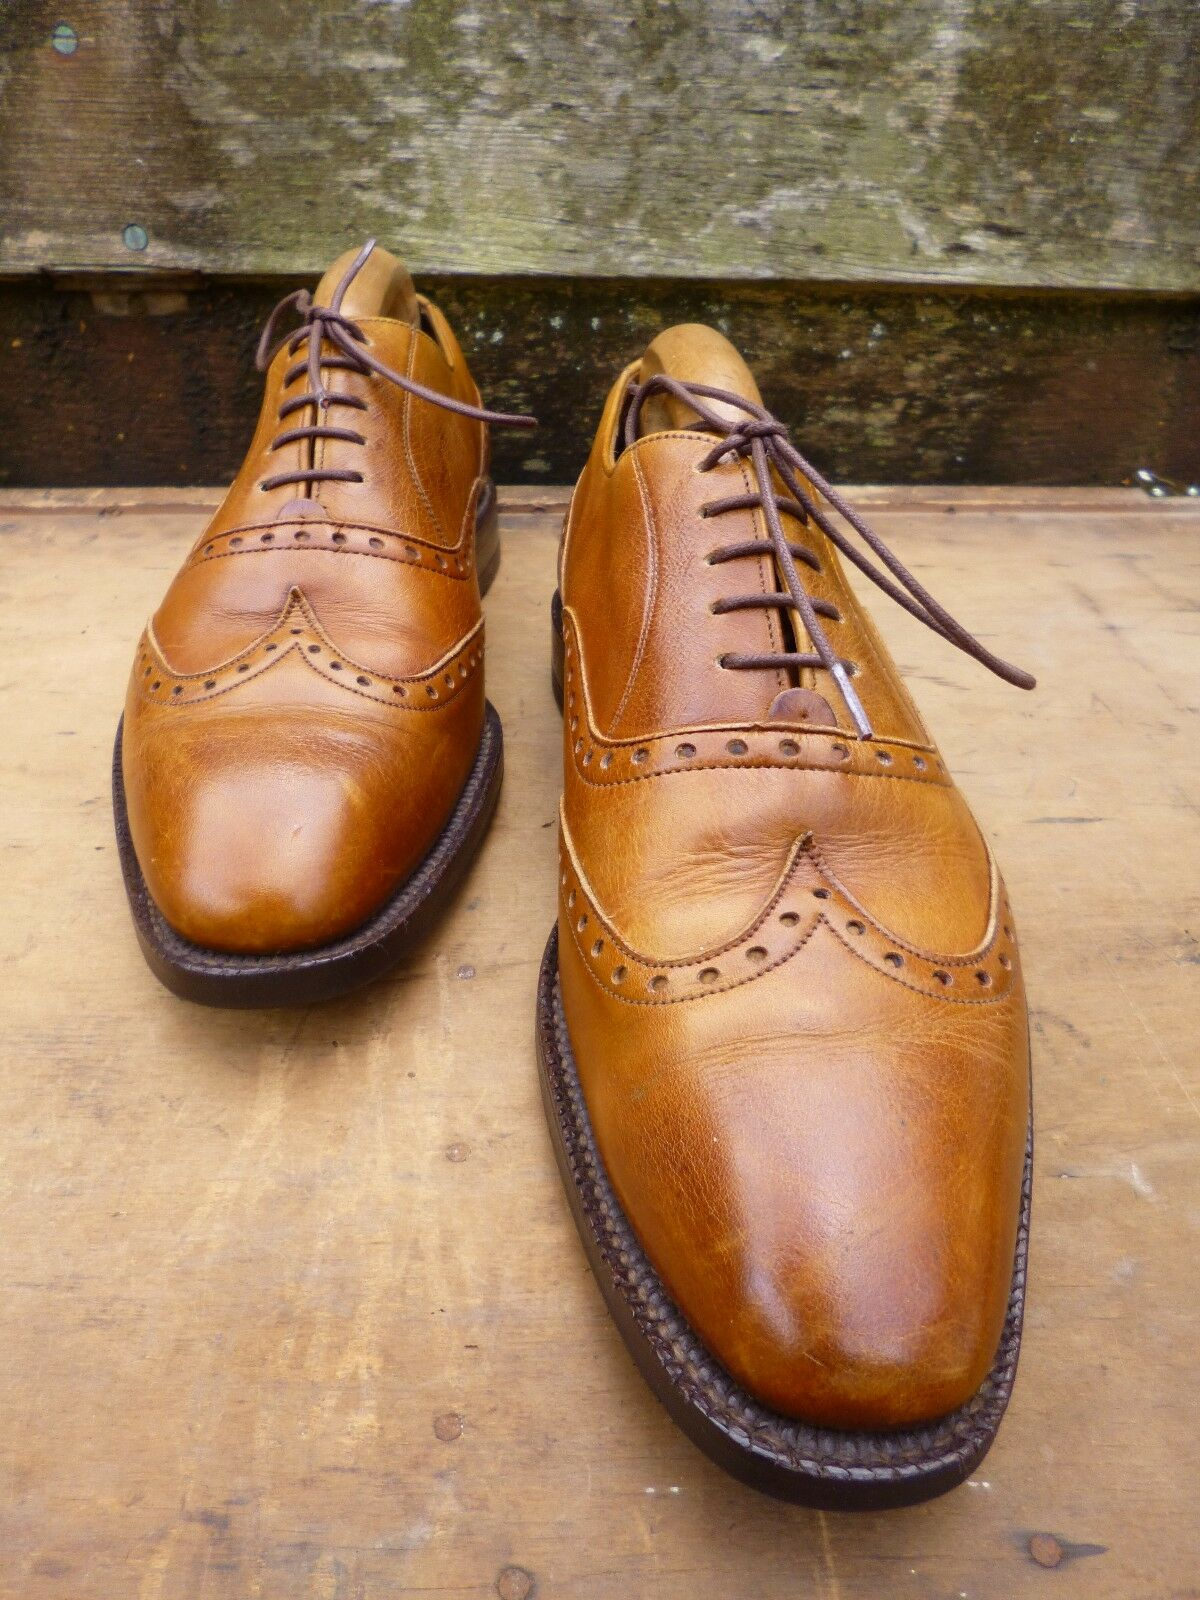 CHEANEY / CHURCH CHURCH CHURCH BROGUE – BROWN / TAN – UK 7 –  EXCELLENT CONDITION 687dca